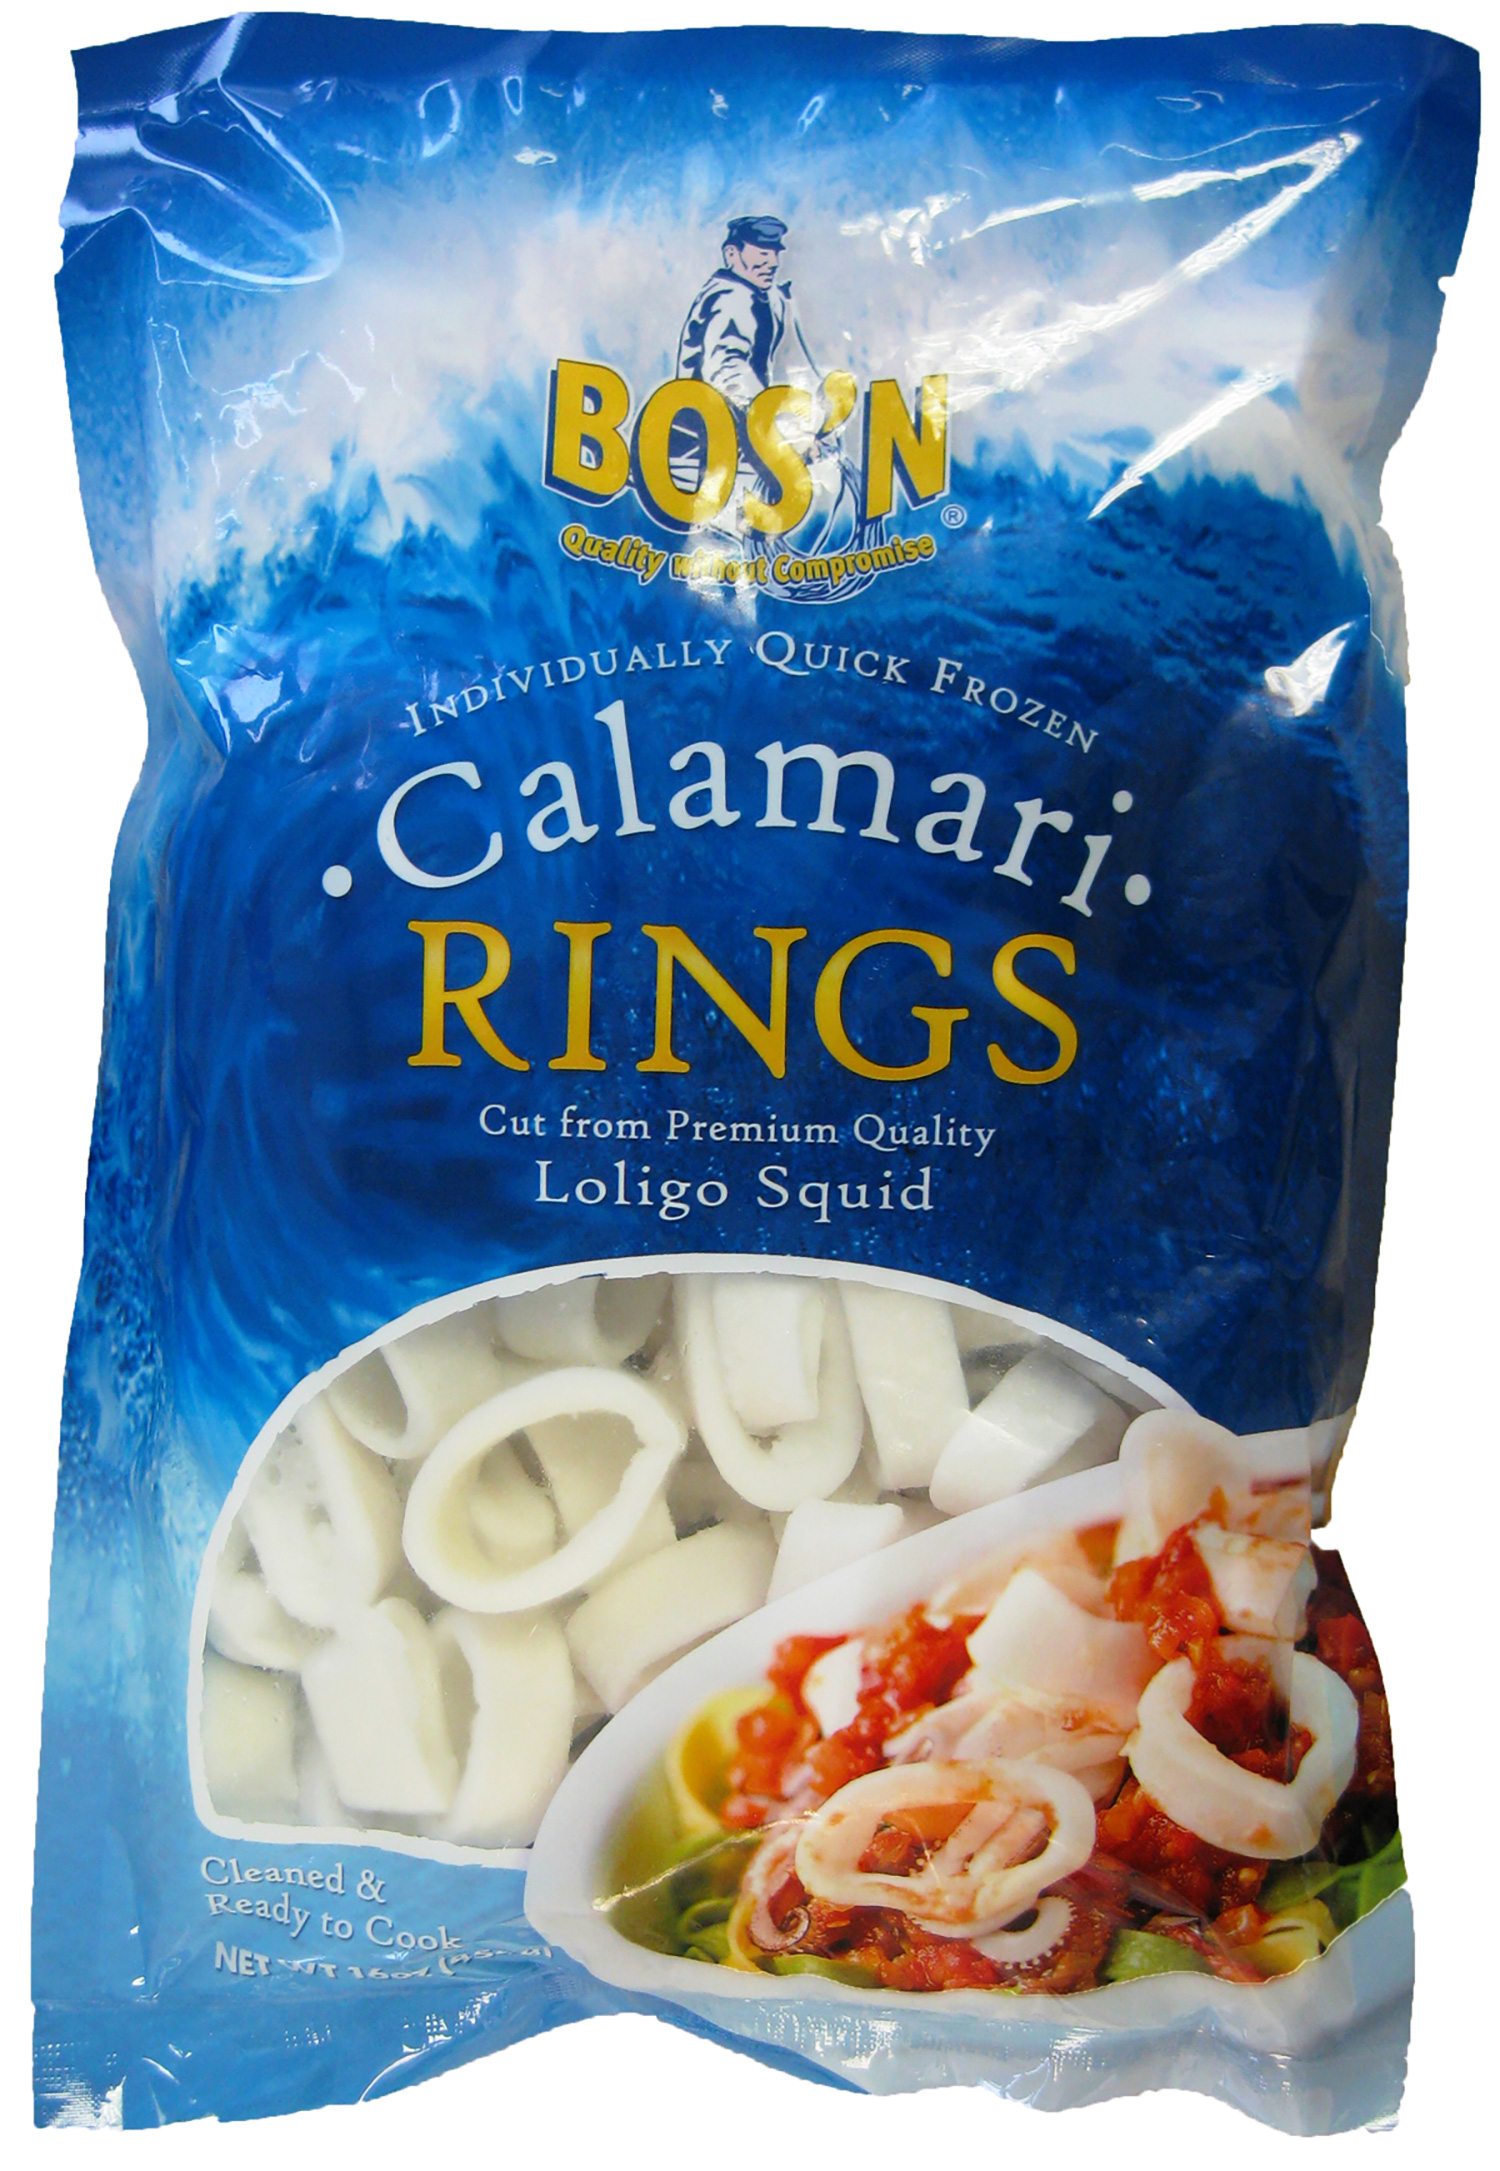 BOS'N IQF Rings Only Calamari | Stavis Seafoods